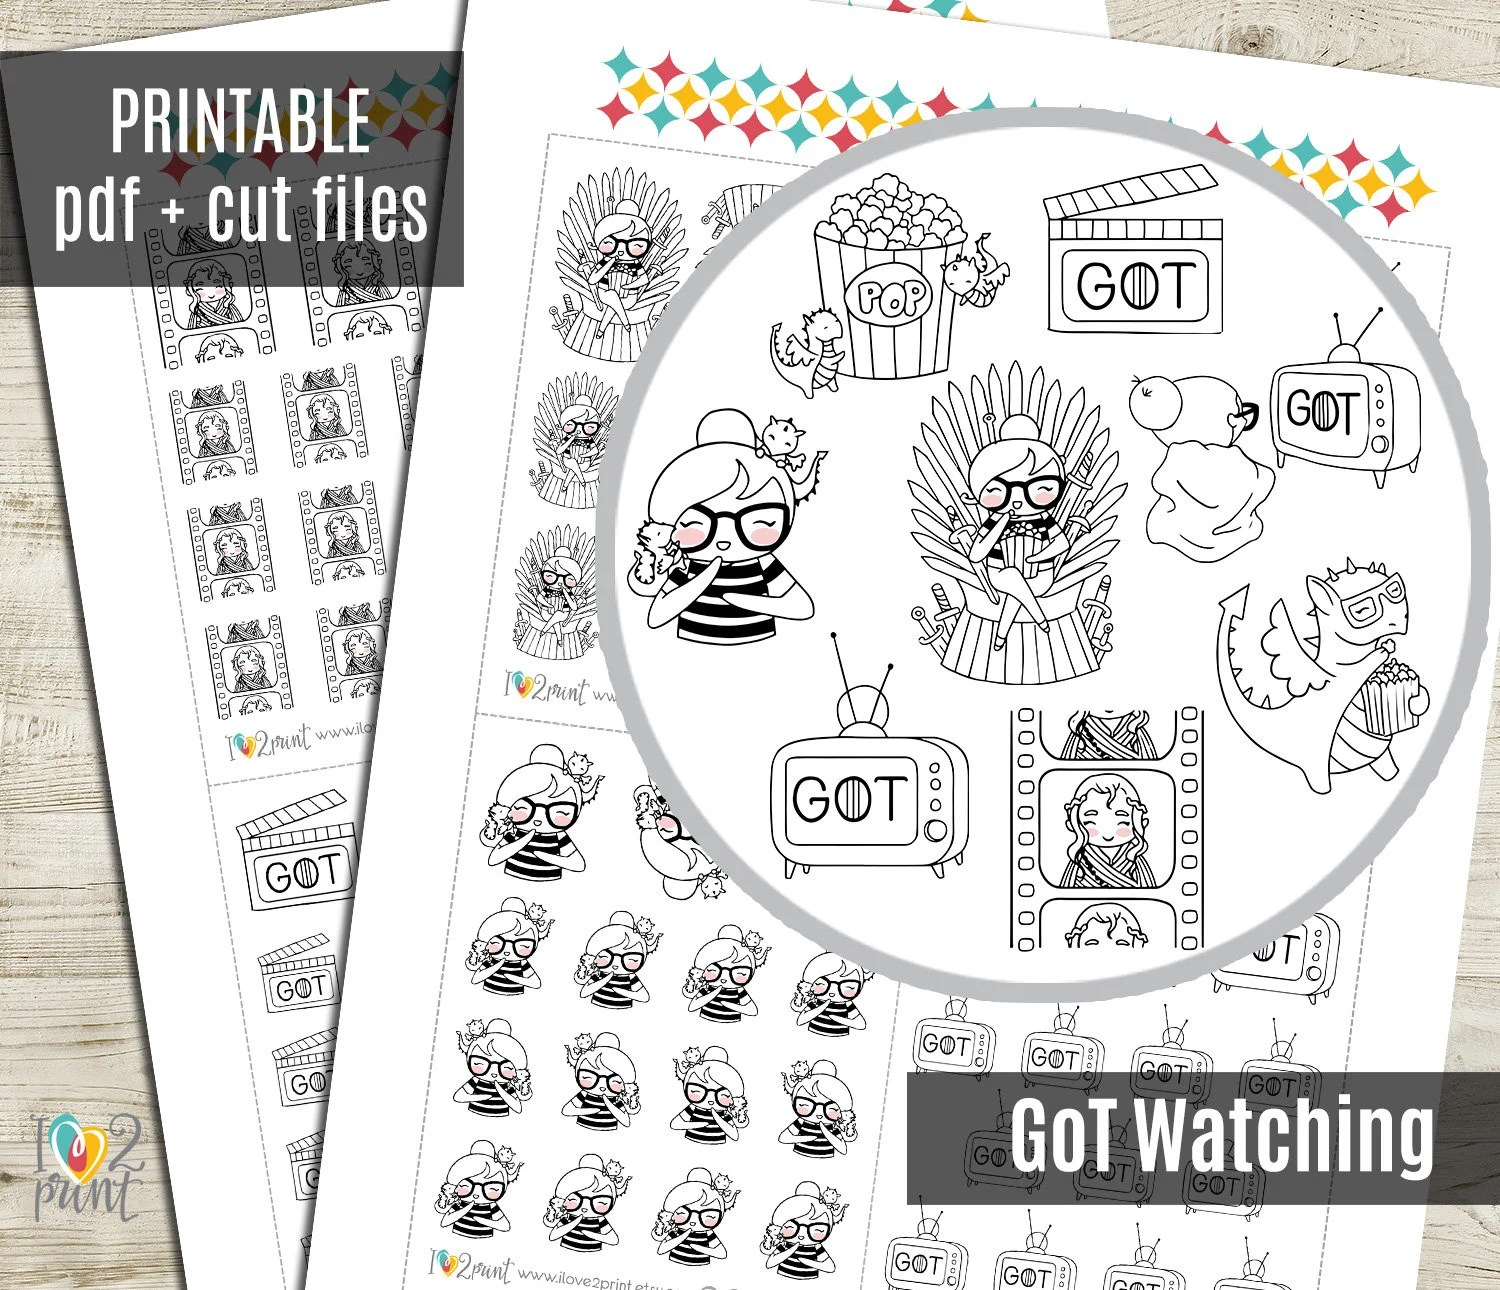 Planner Girl Got Watching Planner Stickers Printable Etsy